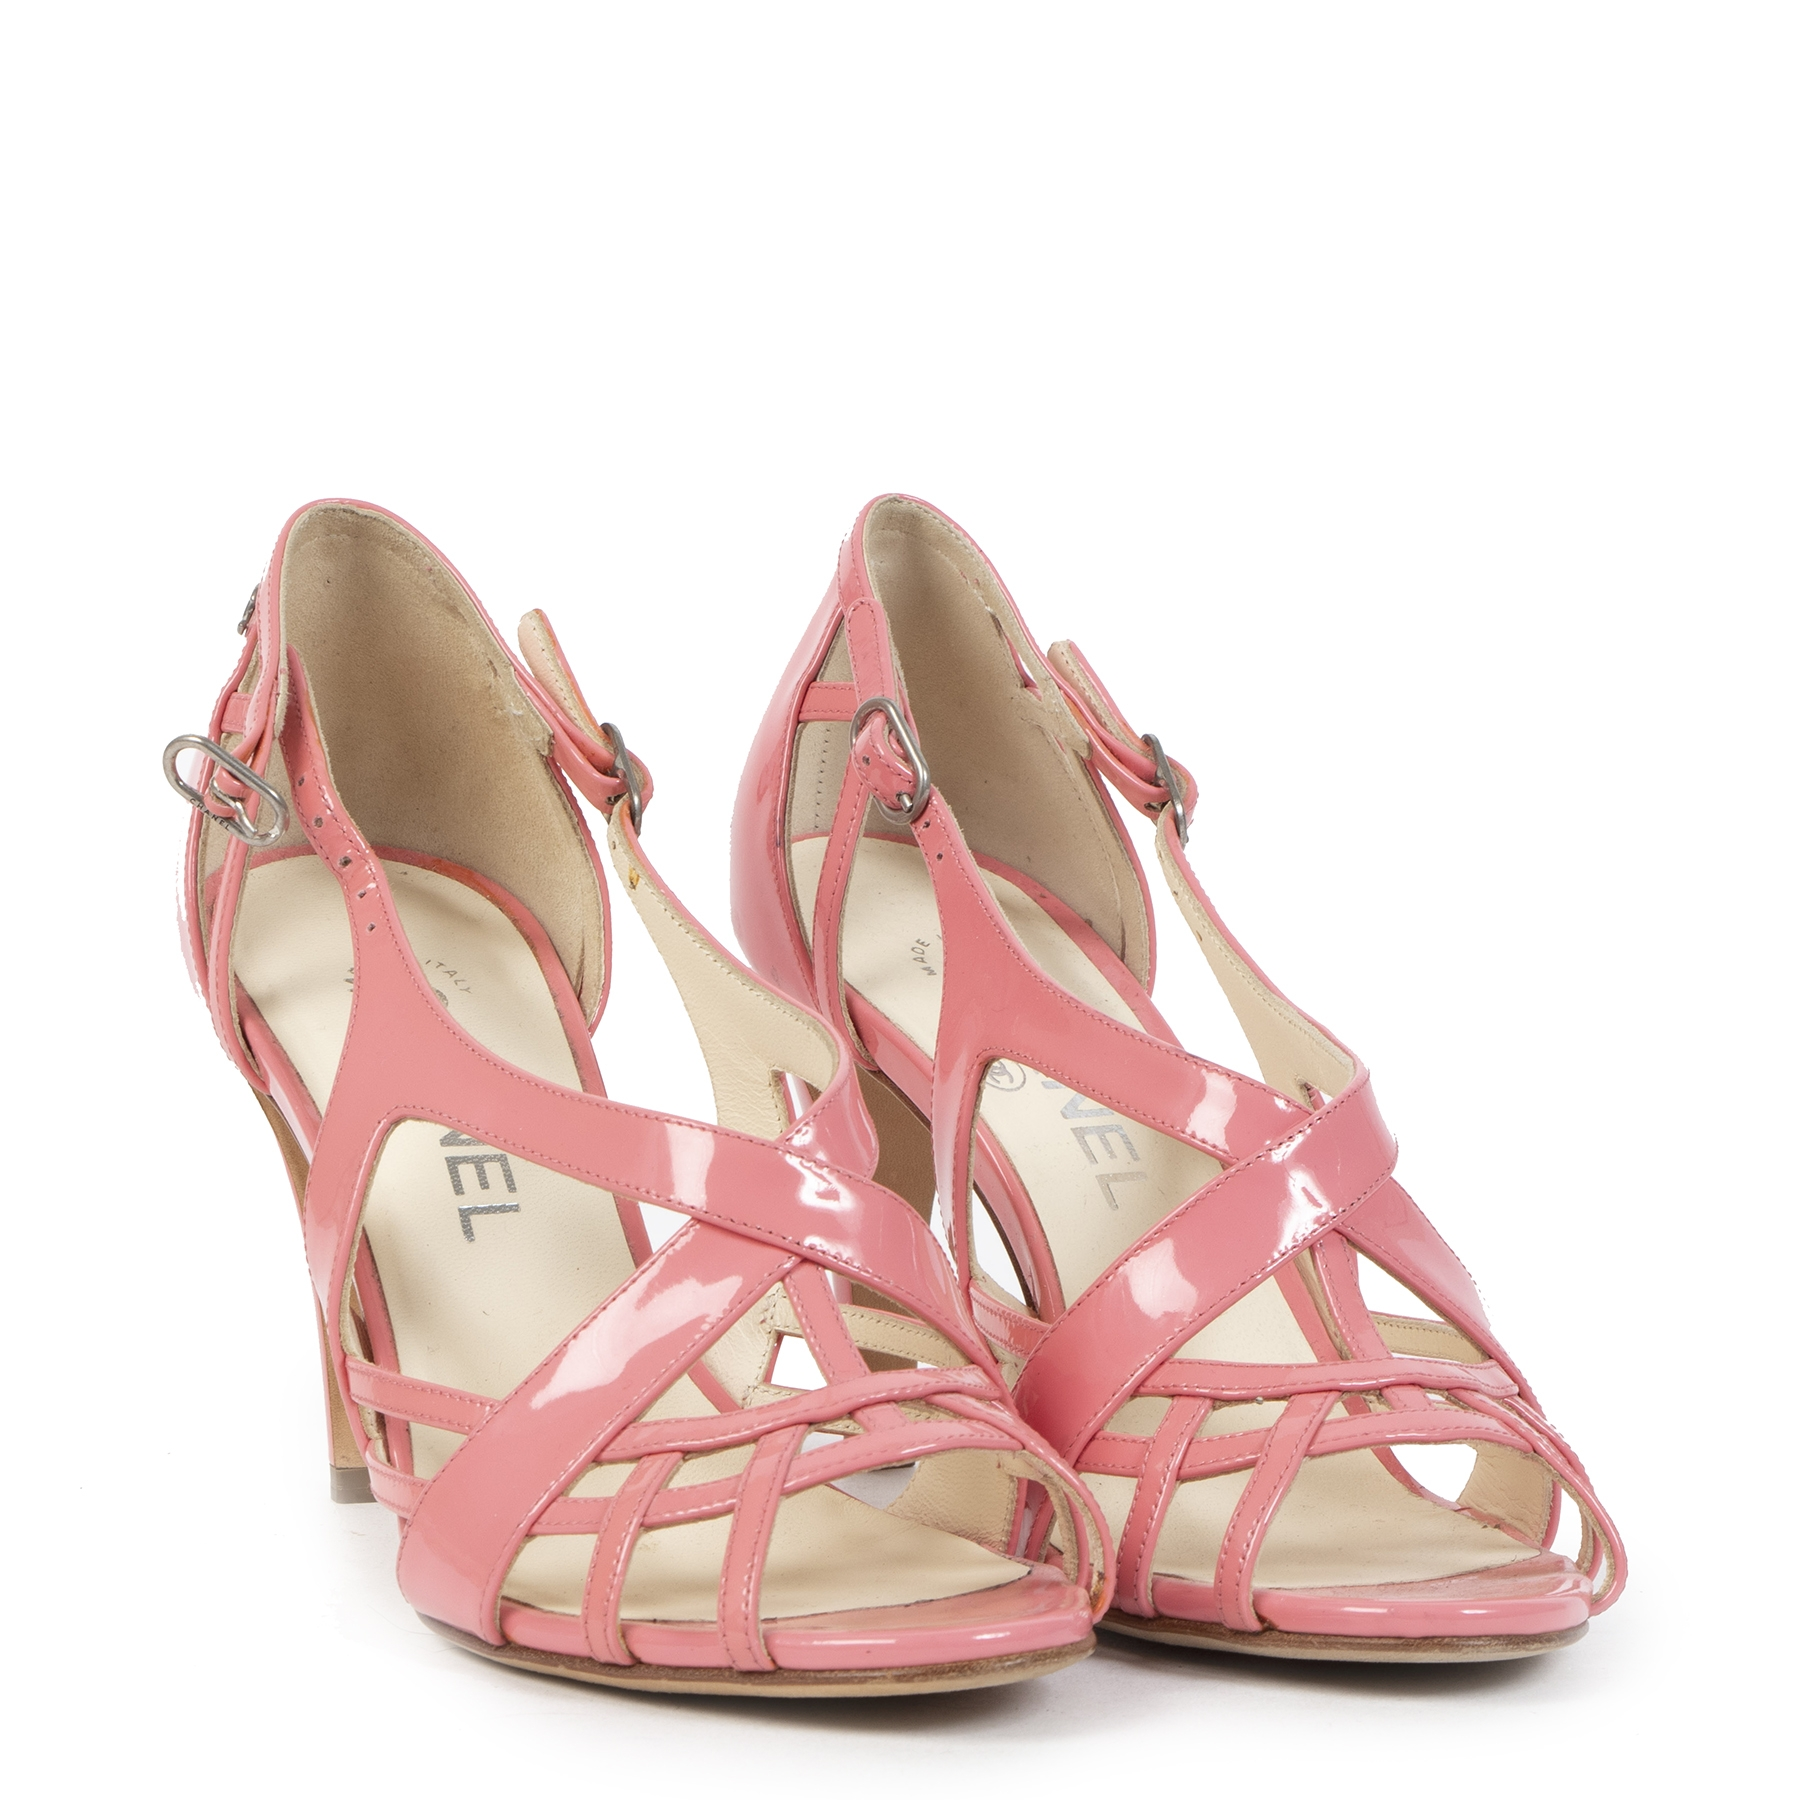 Authentic secondhand Chanel Pink Patent Leather Strappy Sandals - Size 37,5 designer shoes pumps high heels designer brands fashion luxury vintage webshop safe secure online shopping worldwide shipping delivery